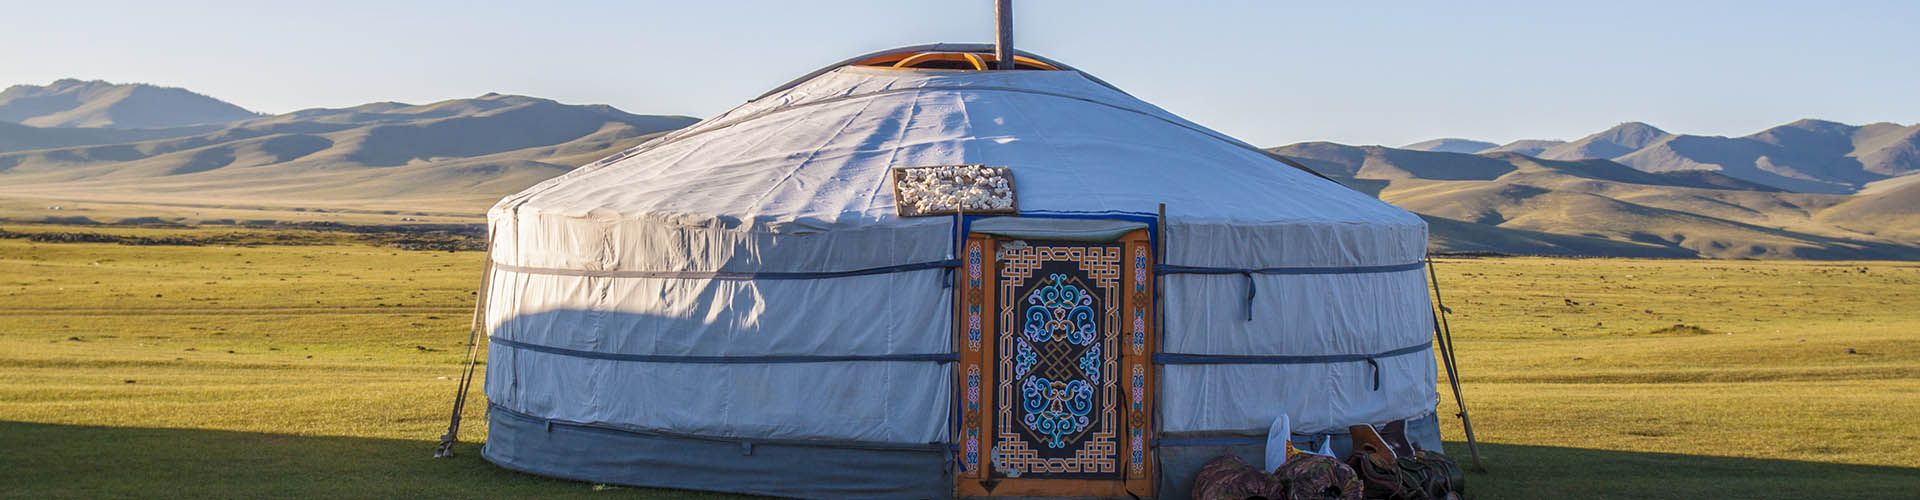 Mongolia Yurts Of Mongolian Nomads Description And History By Mongolia Travel And Tours